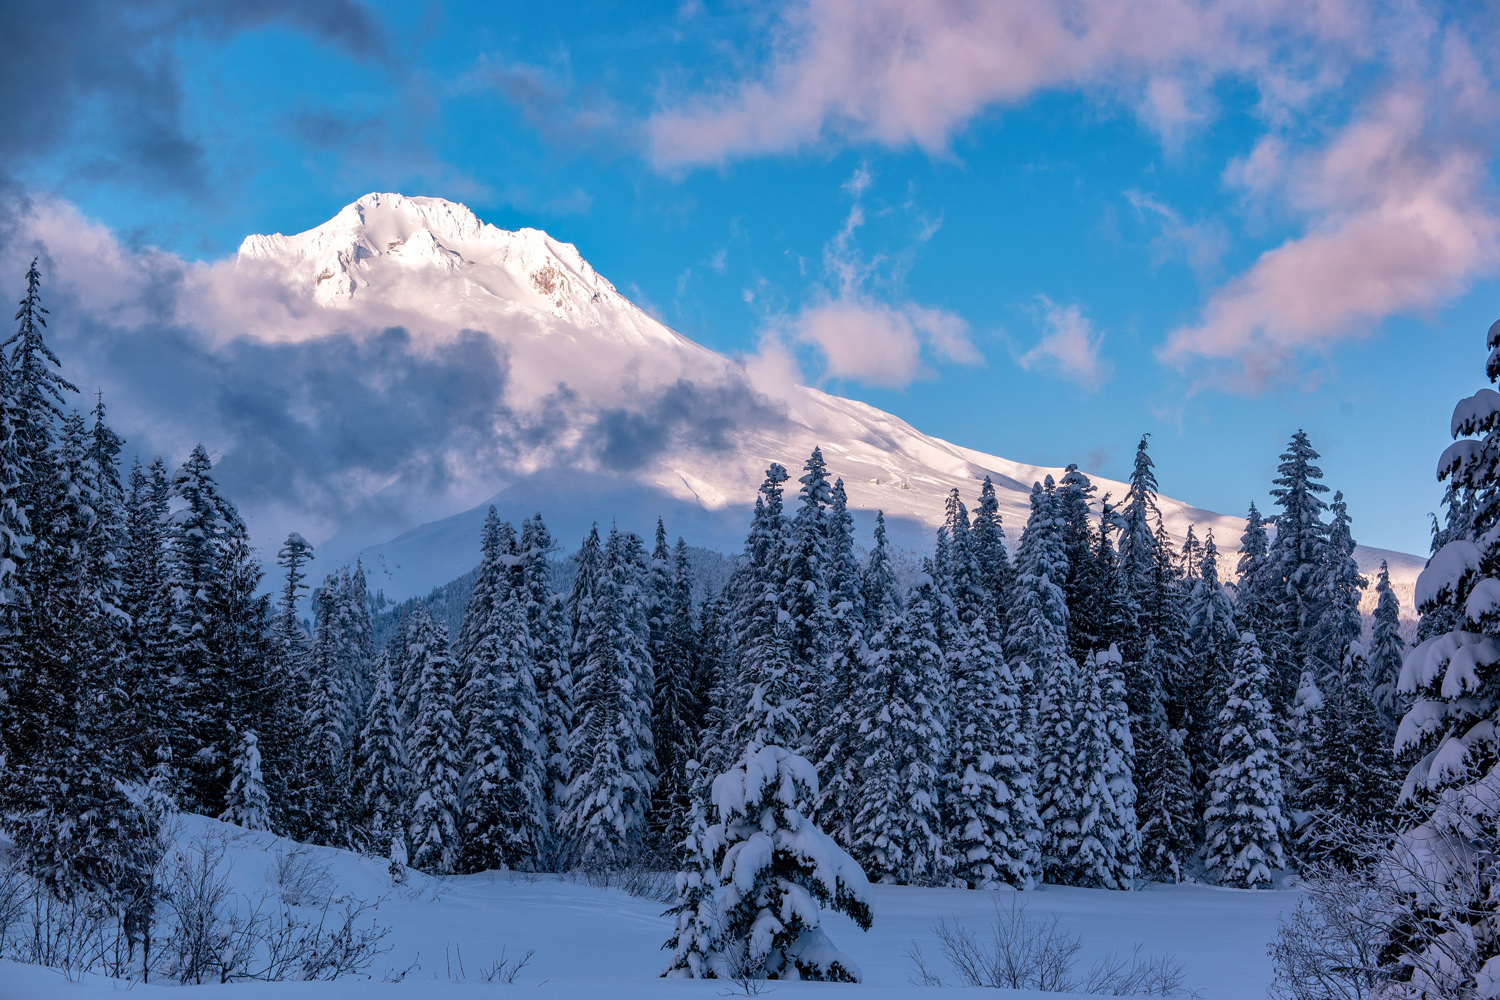 Wasim Muklashy Photography_Wasim of Nazareth_Mount Hood_Oregon_103.jpg